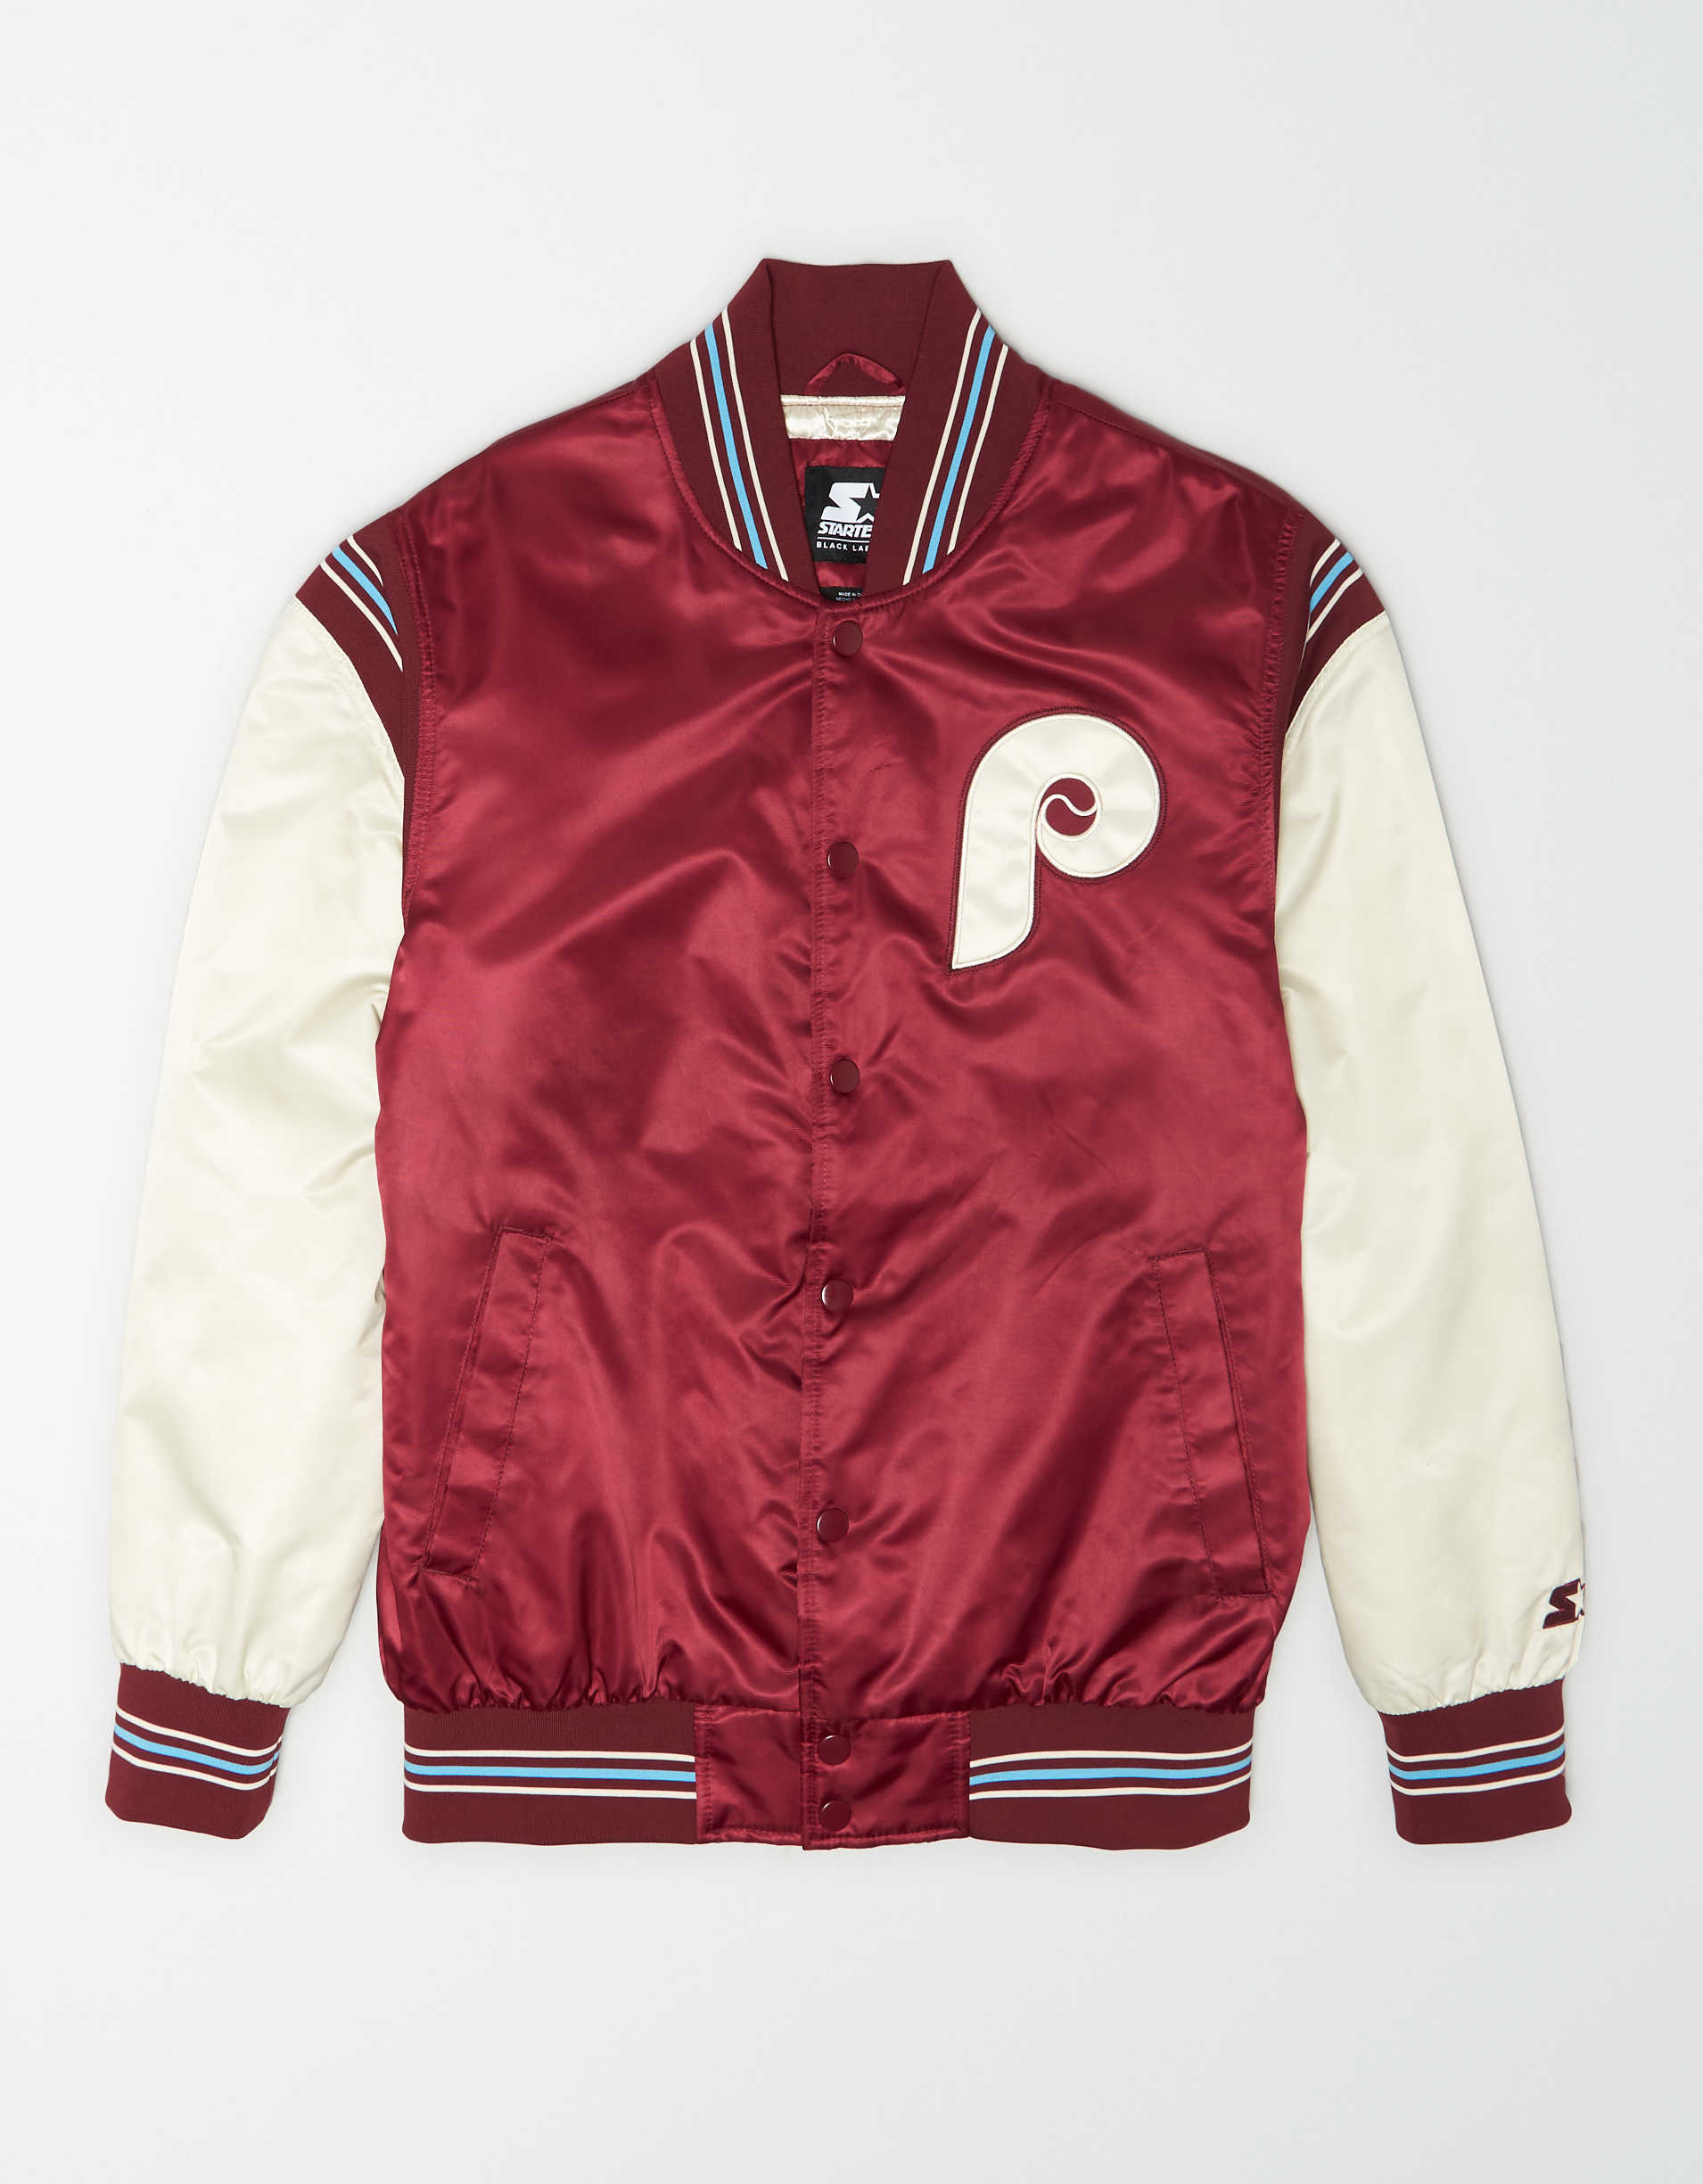 Tailgate X Starter Men's Philadelphia Phillies Varsity Jacket